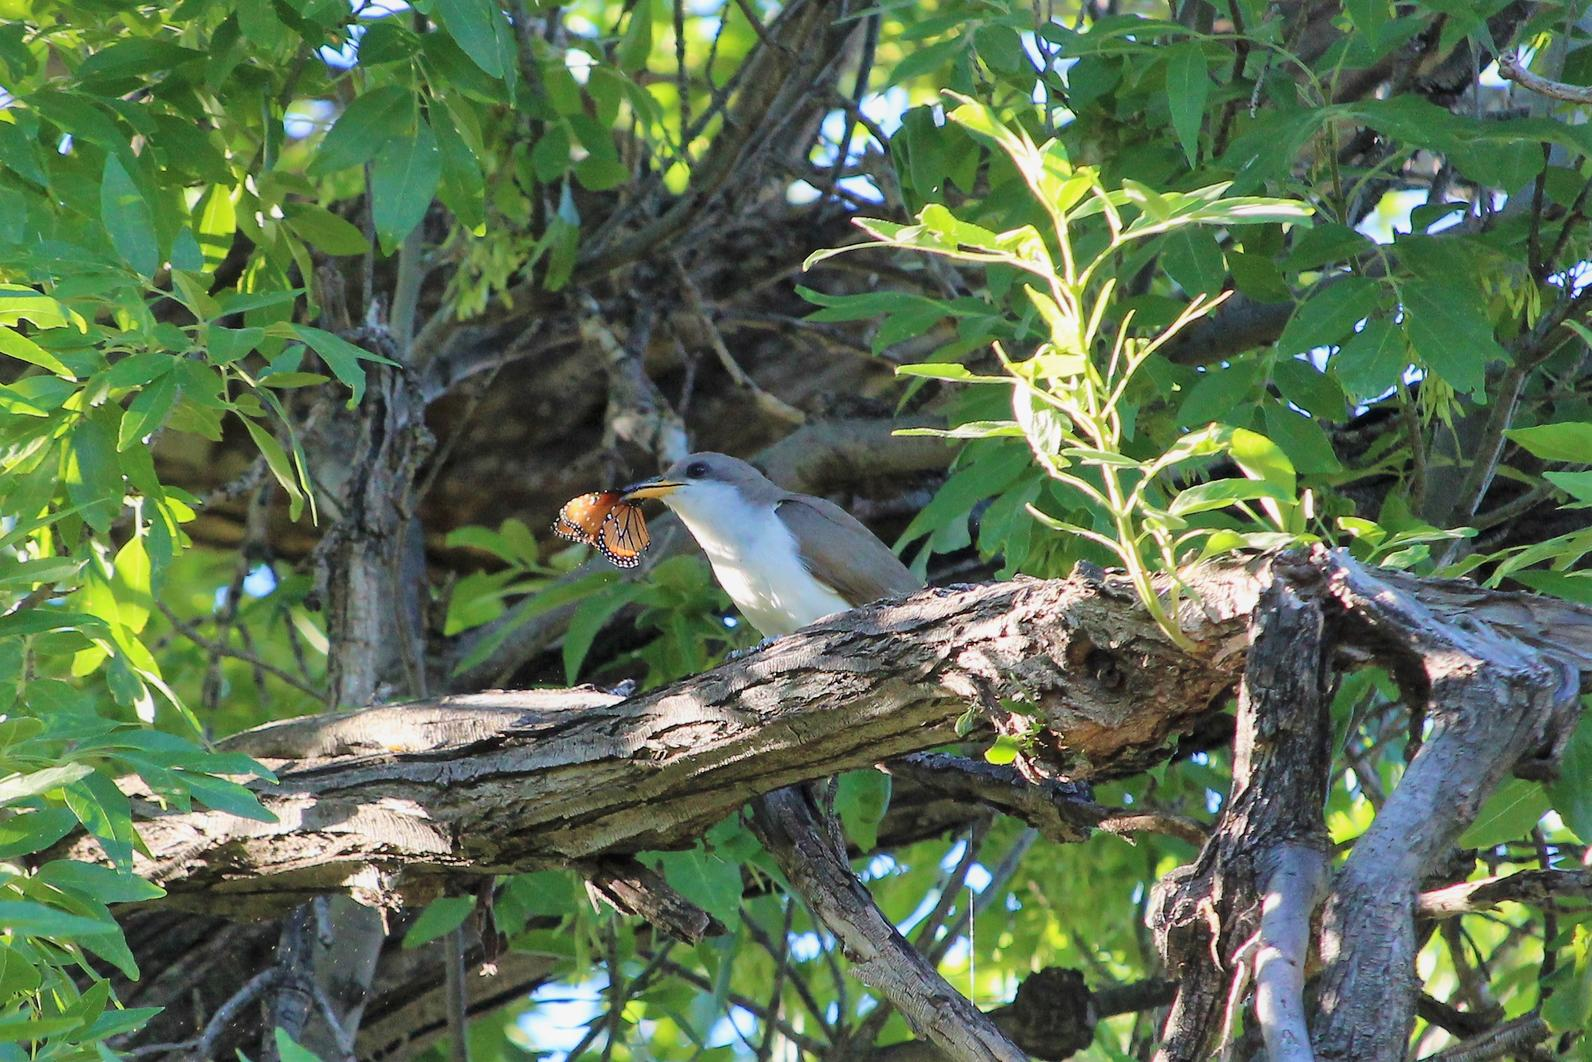 A Western Yellow-billed Cuckoo perches on a branch in a big leafy green tree with a Queen Butterfly in its beak.